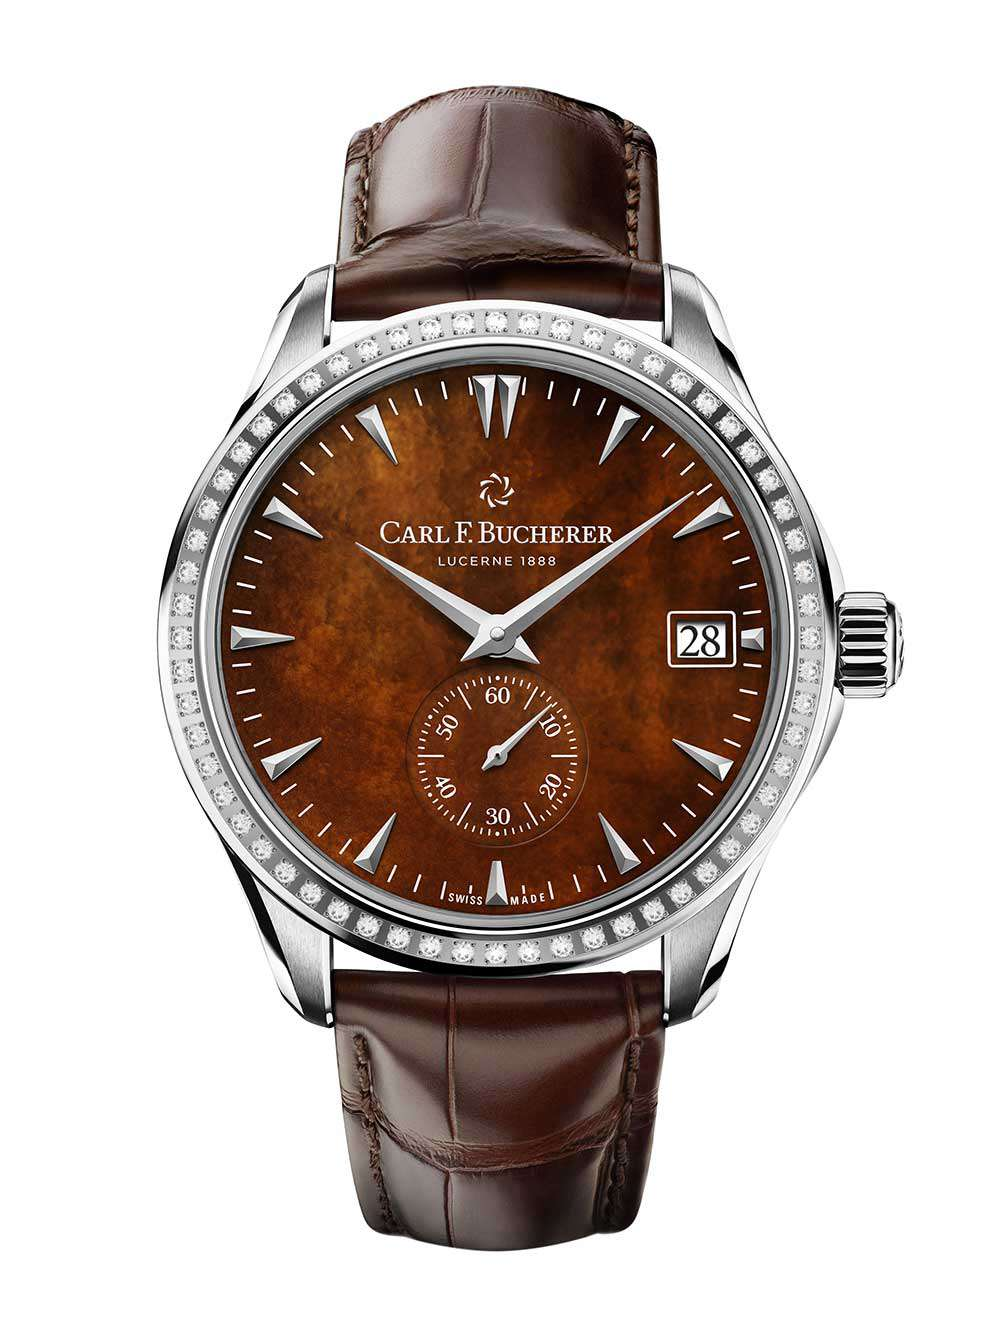 Carl F. Bucherer Manero Peripheral, diamond-set version with brown mother-of-pearl dial